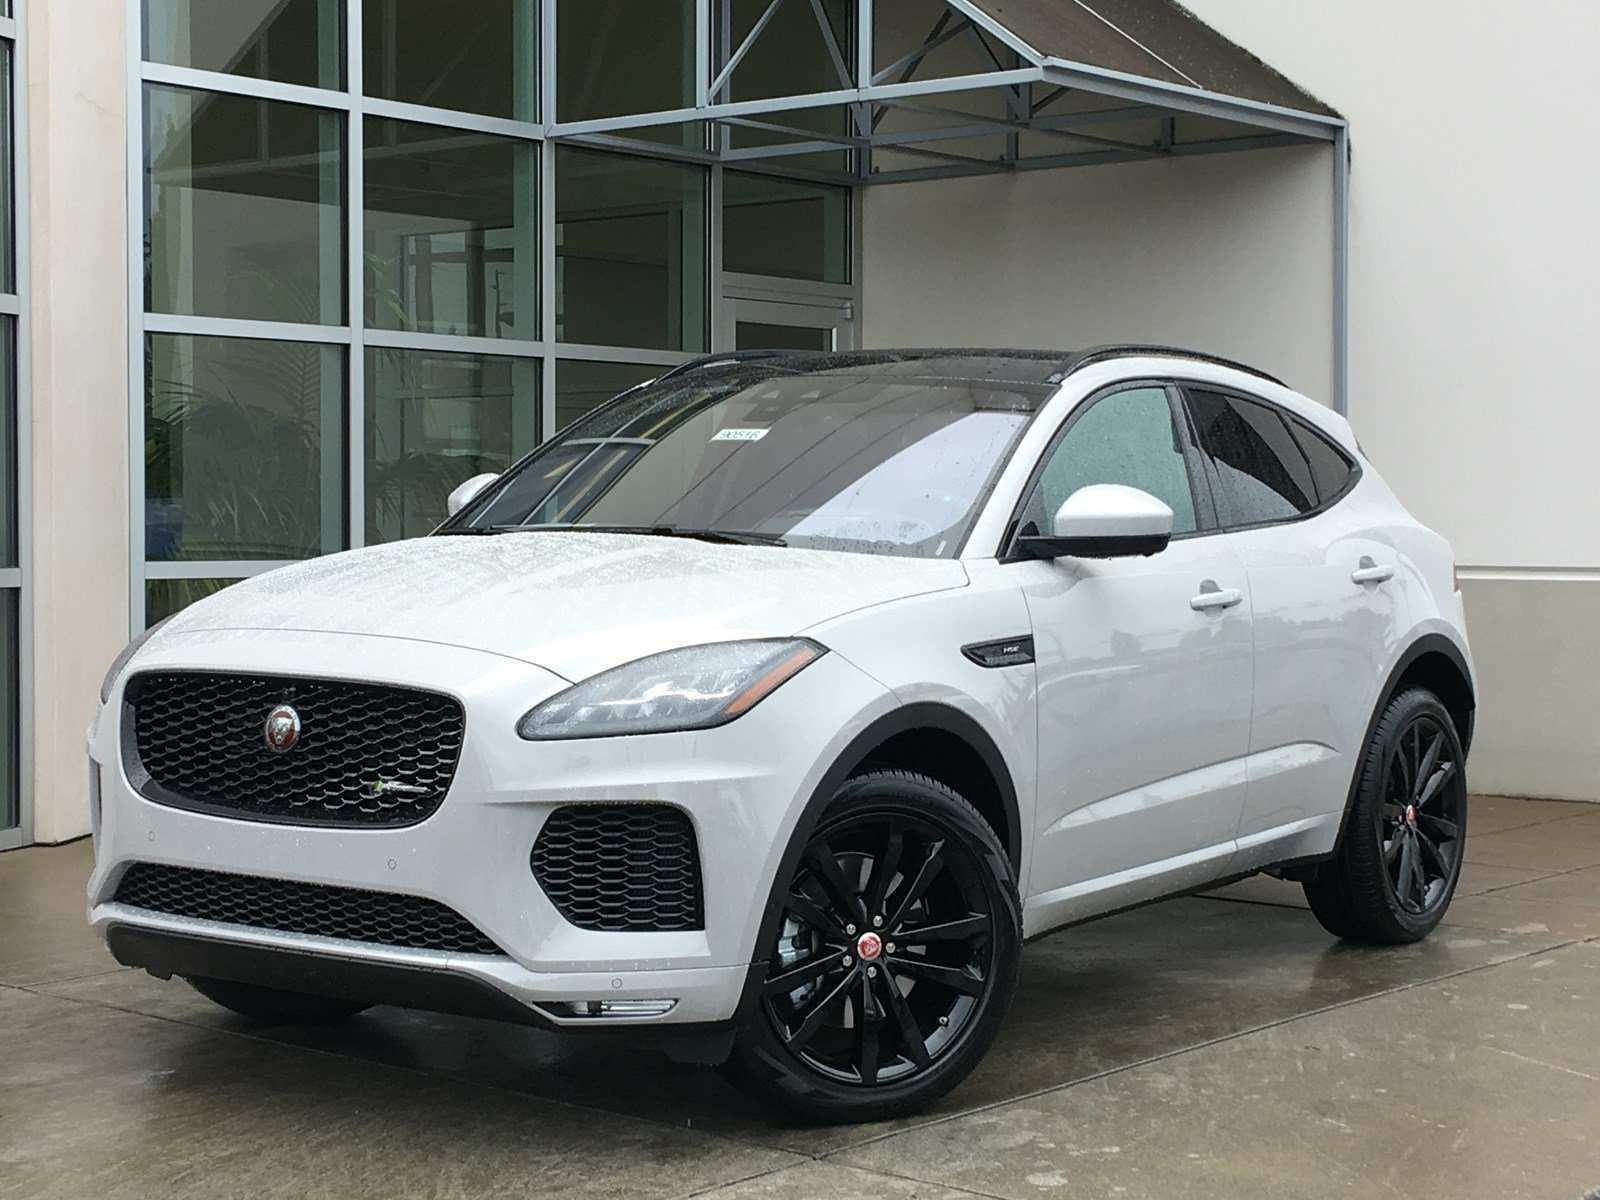 74 Great 2019 Jaguar E Pace Price Engine with 2019 Jaguar E Pace Price